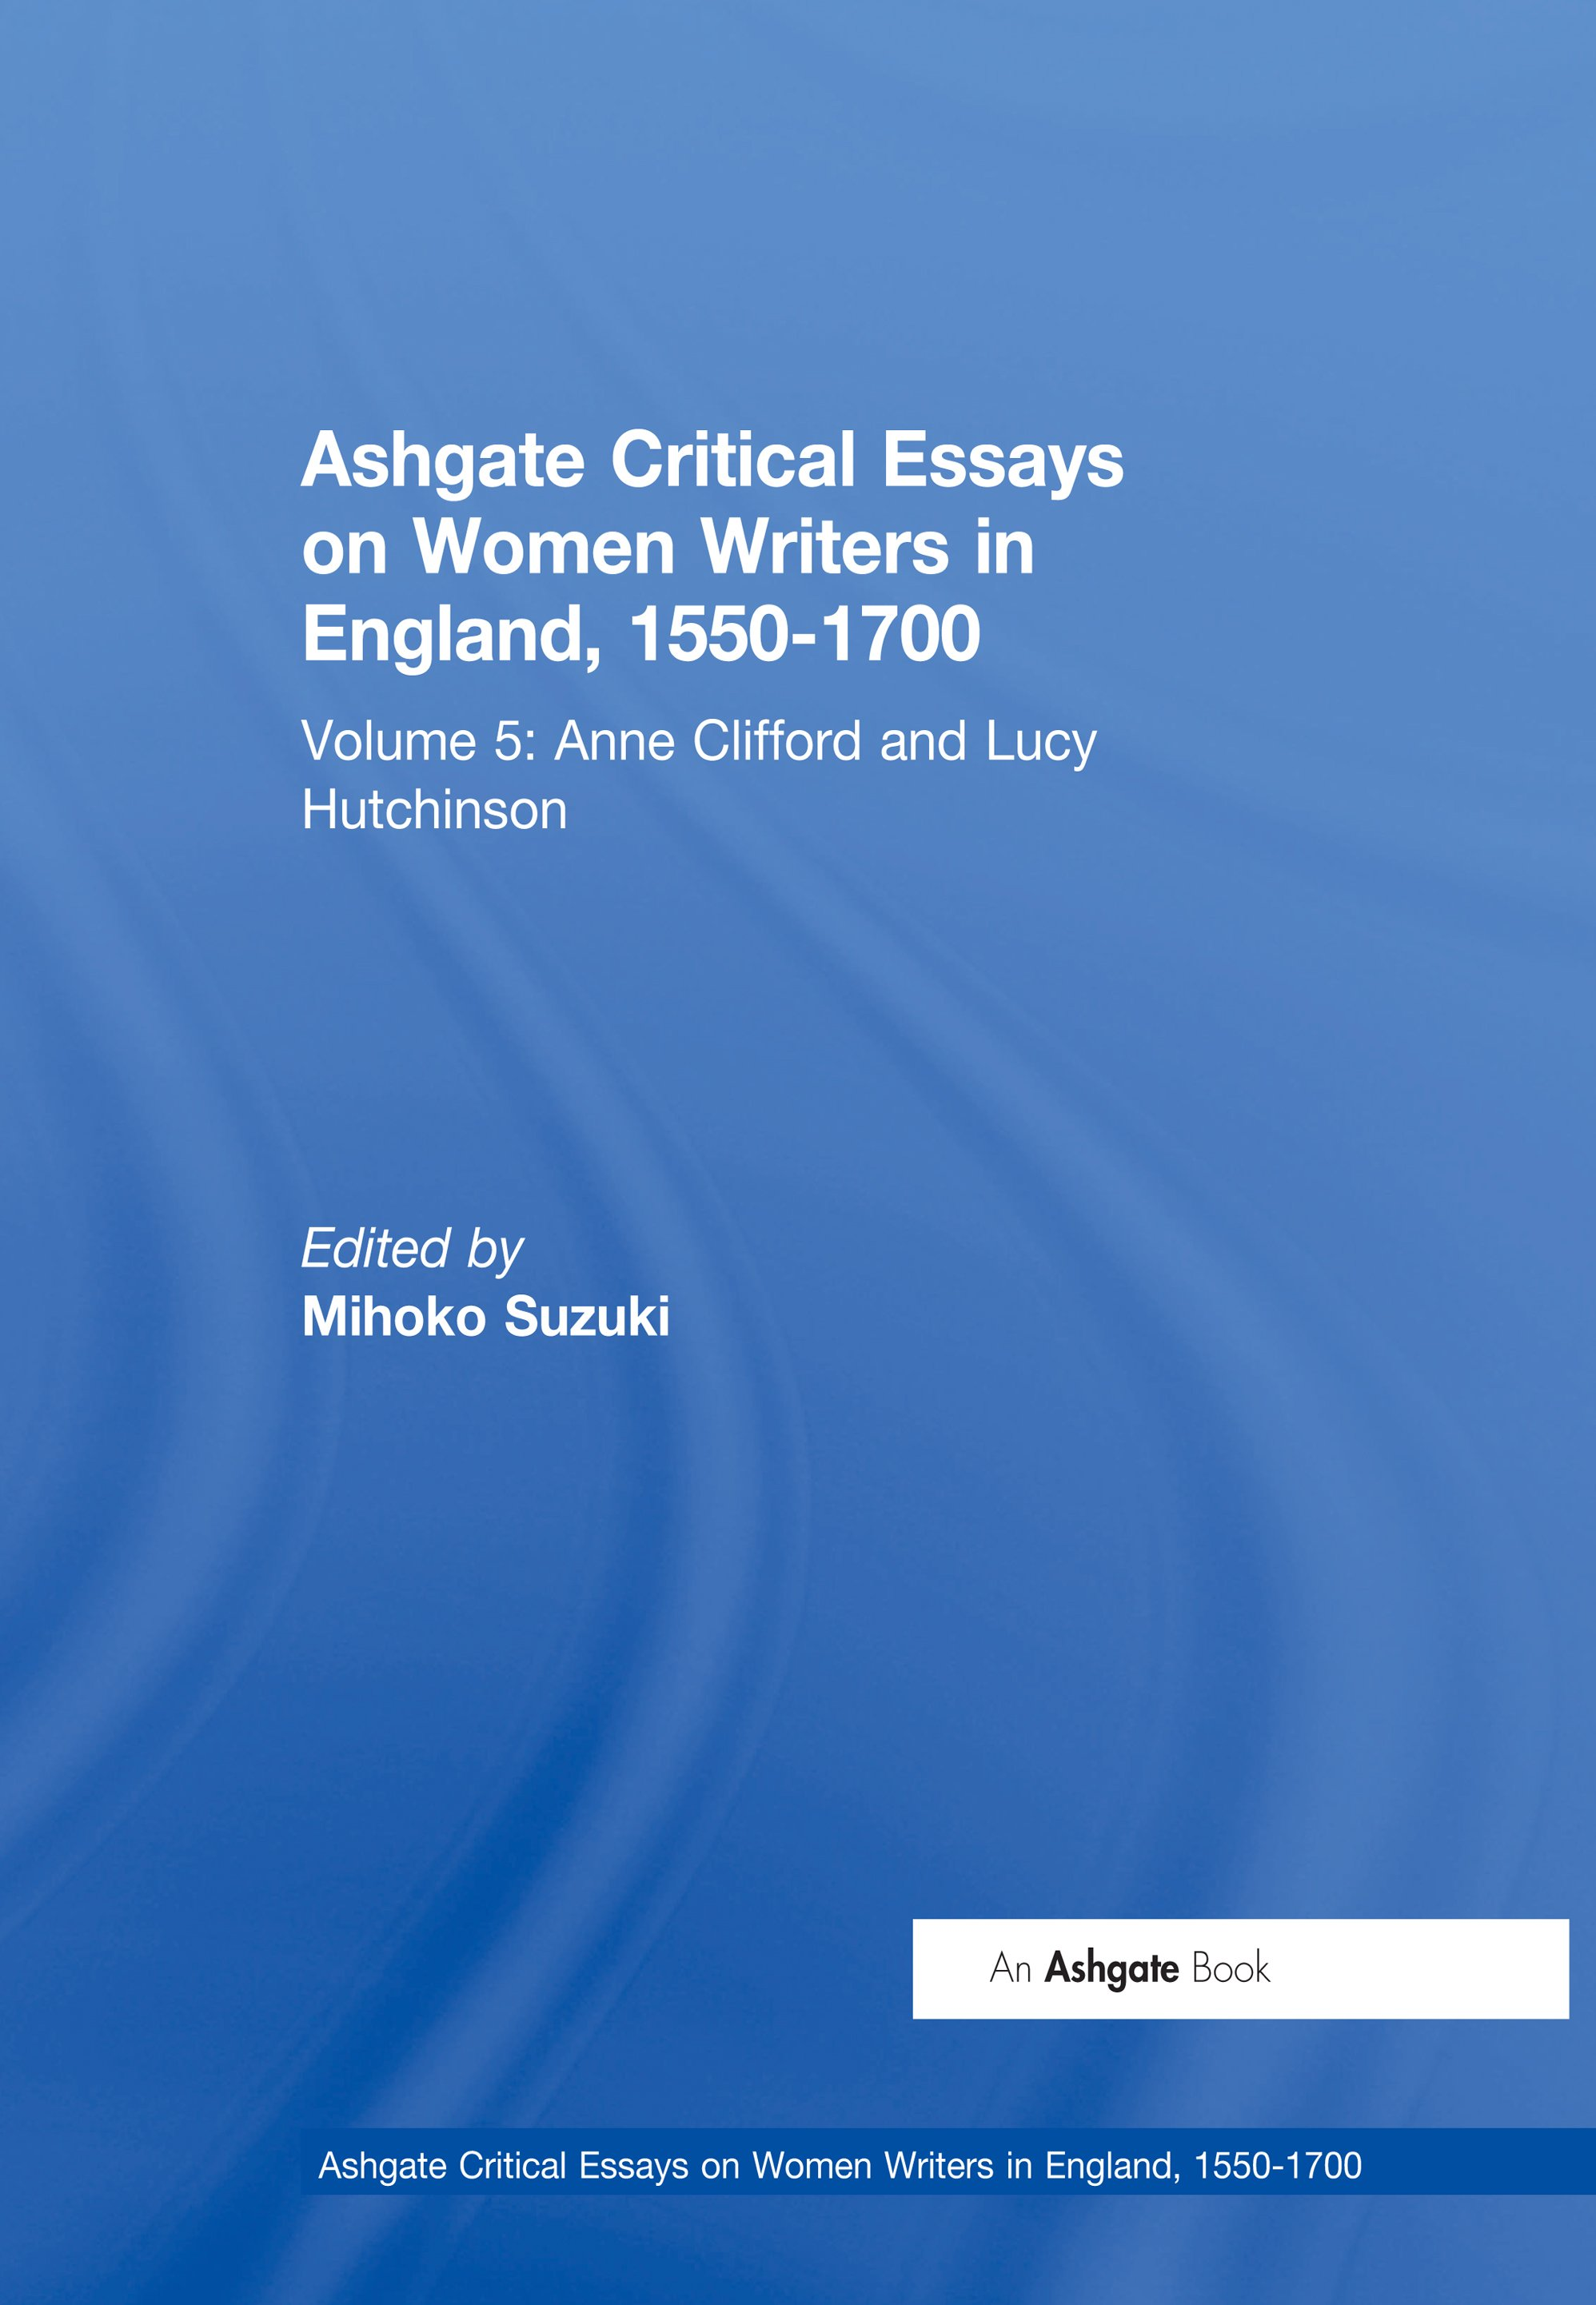 Ashgate Critical Essays on Women Writers in England, 1550-1700